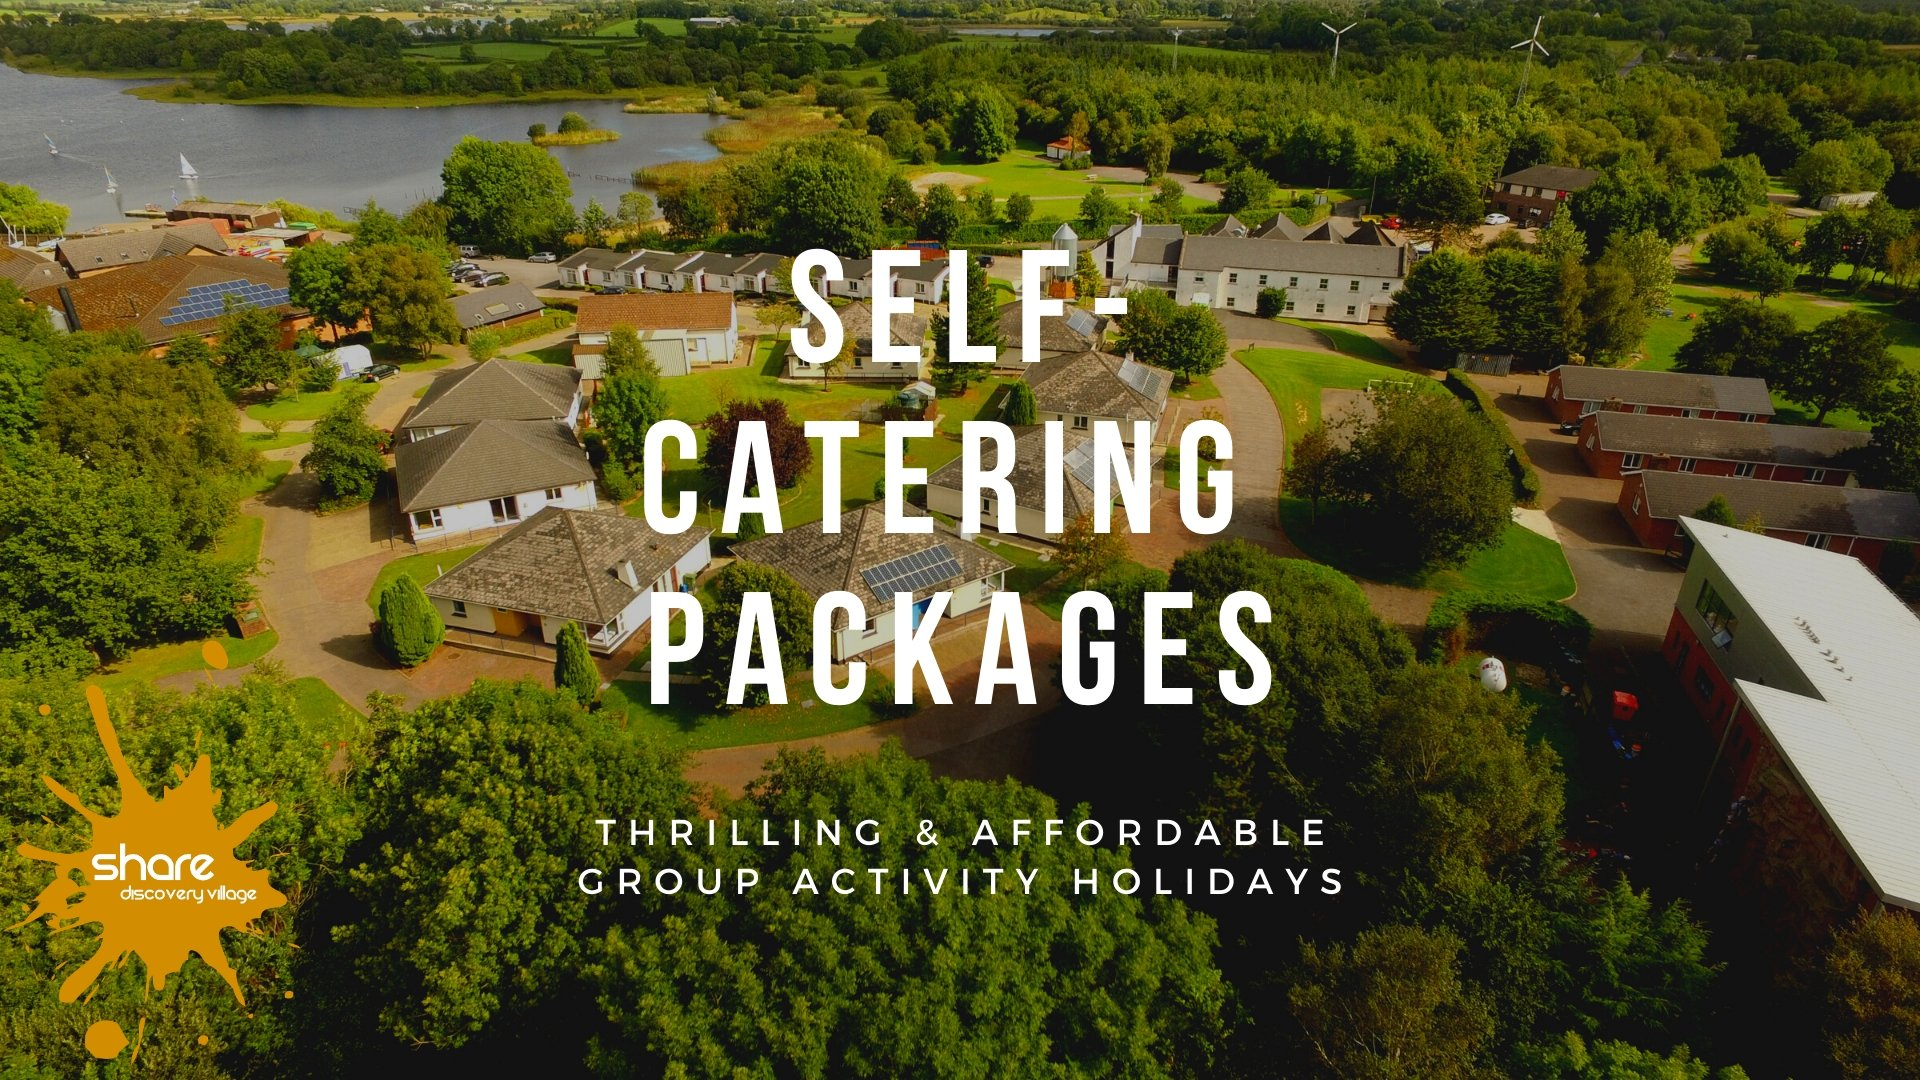 Self-Catering Packages